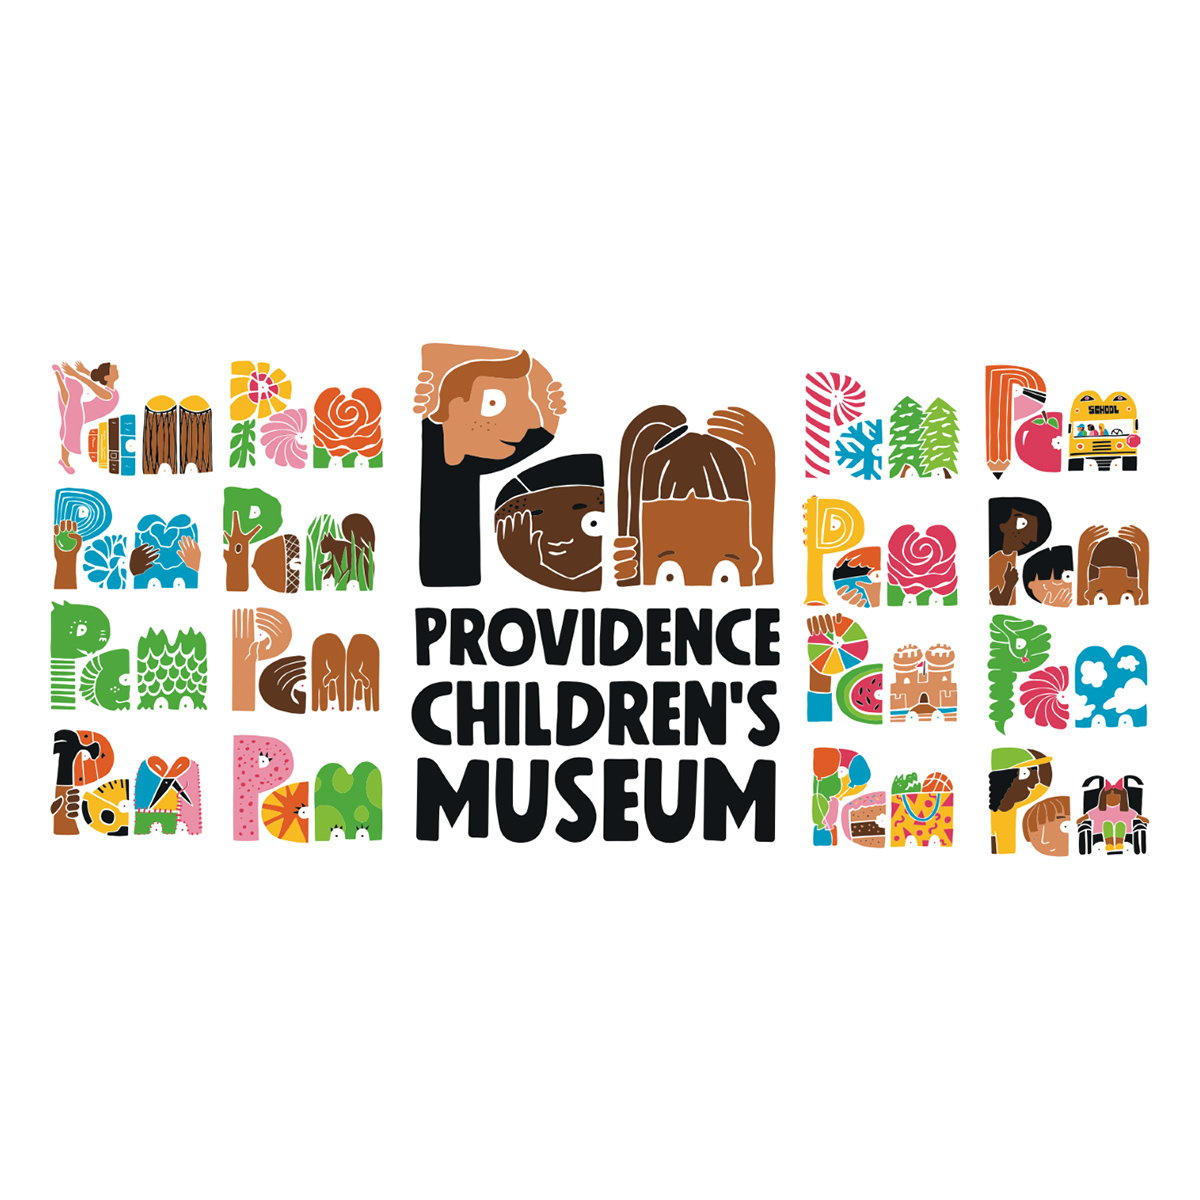 Nail Designs New Brand Identity for Providence Children's Museum